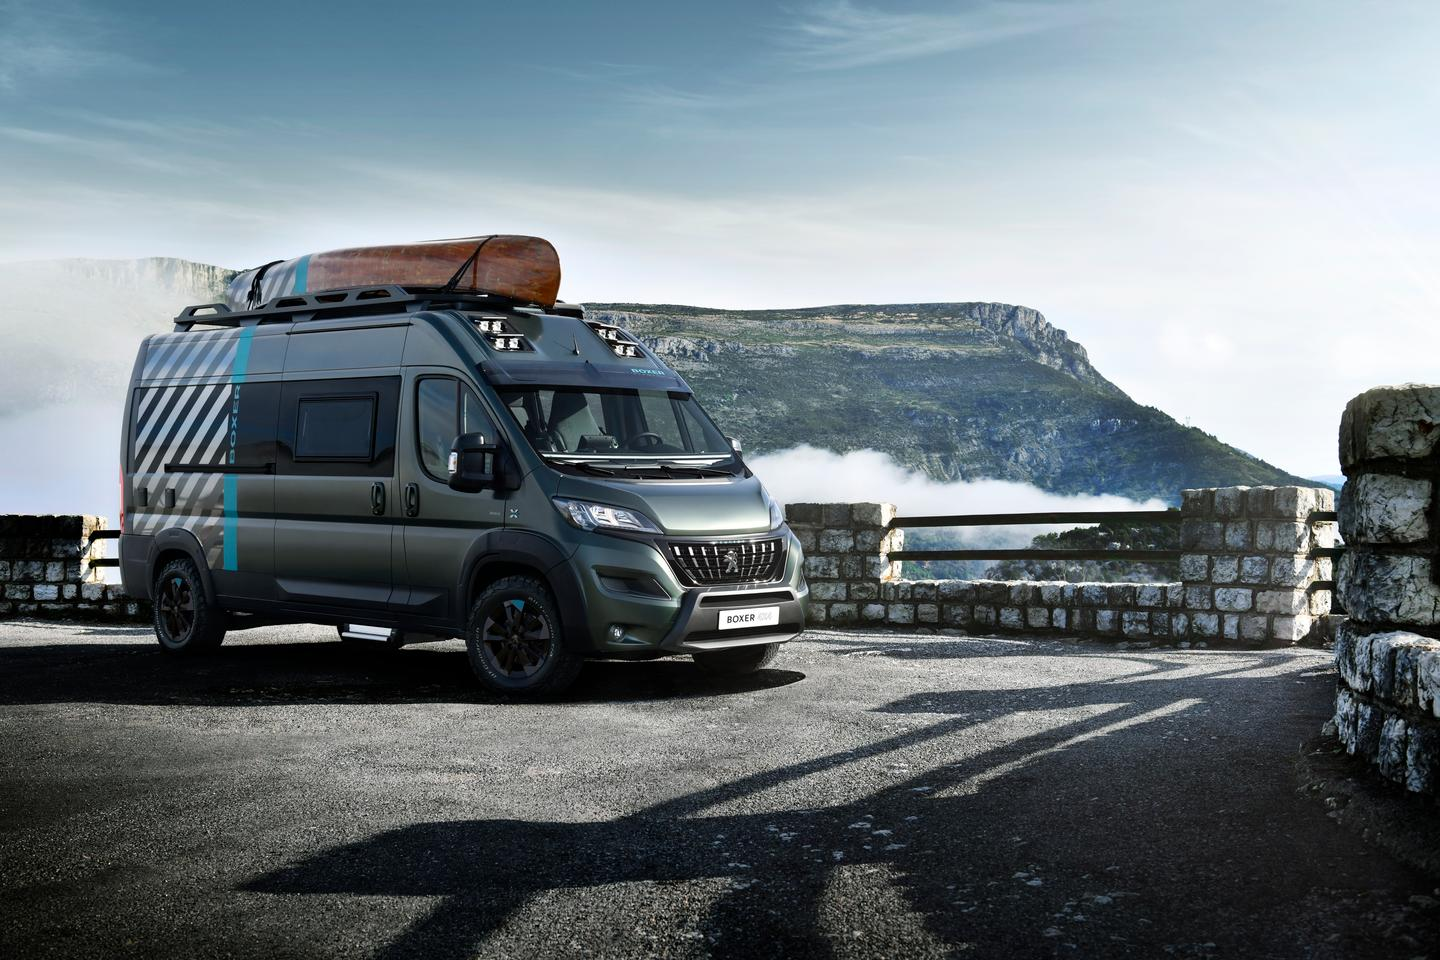 Weird paint: check. Superfluous sports gear: check. Off-road accessories: check. Yep, that's definitely a concept camper van developed by an automaker